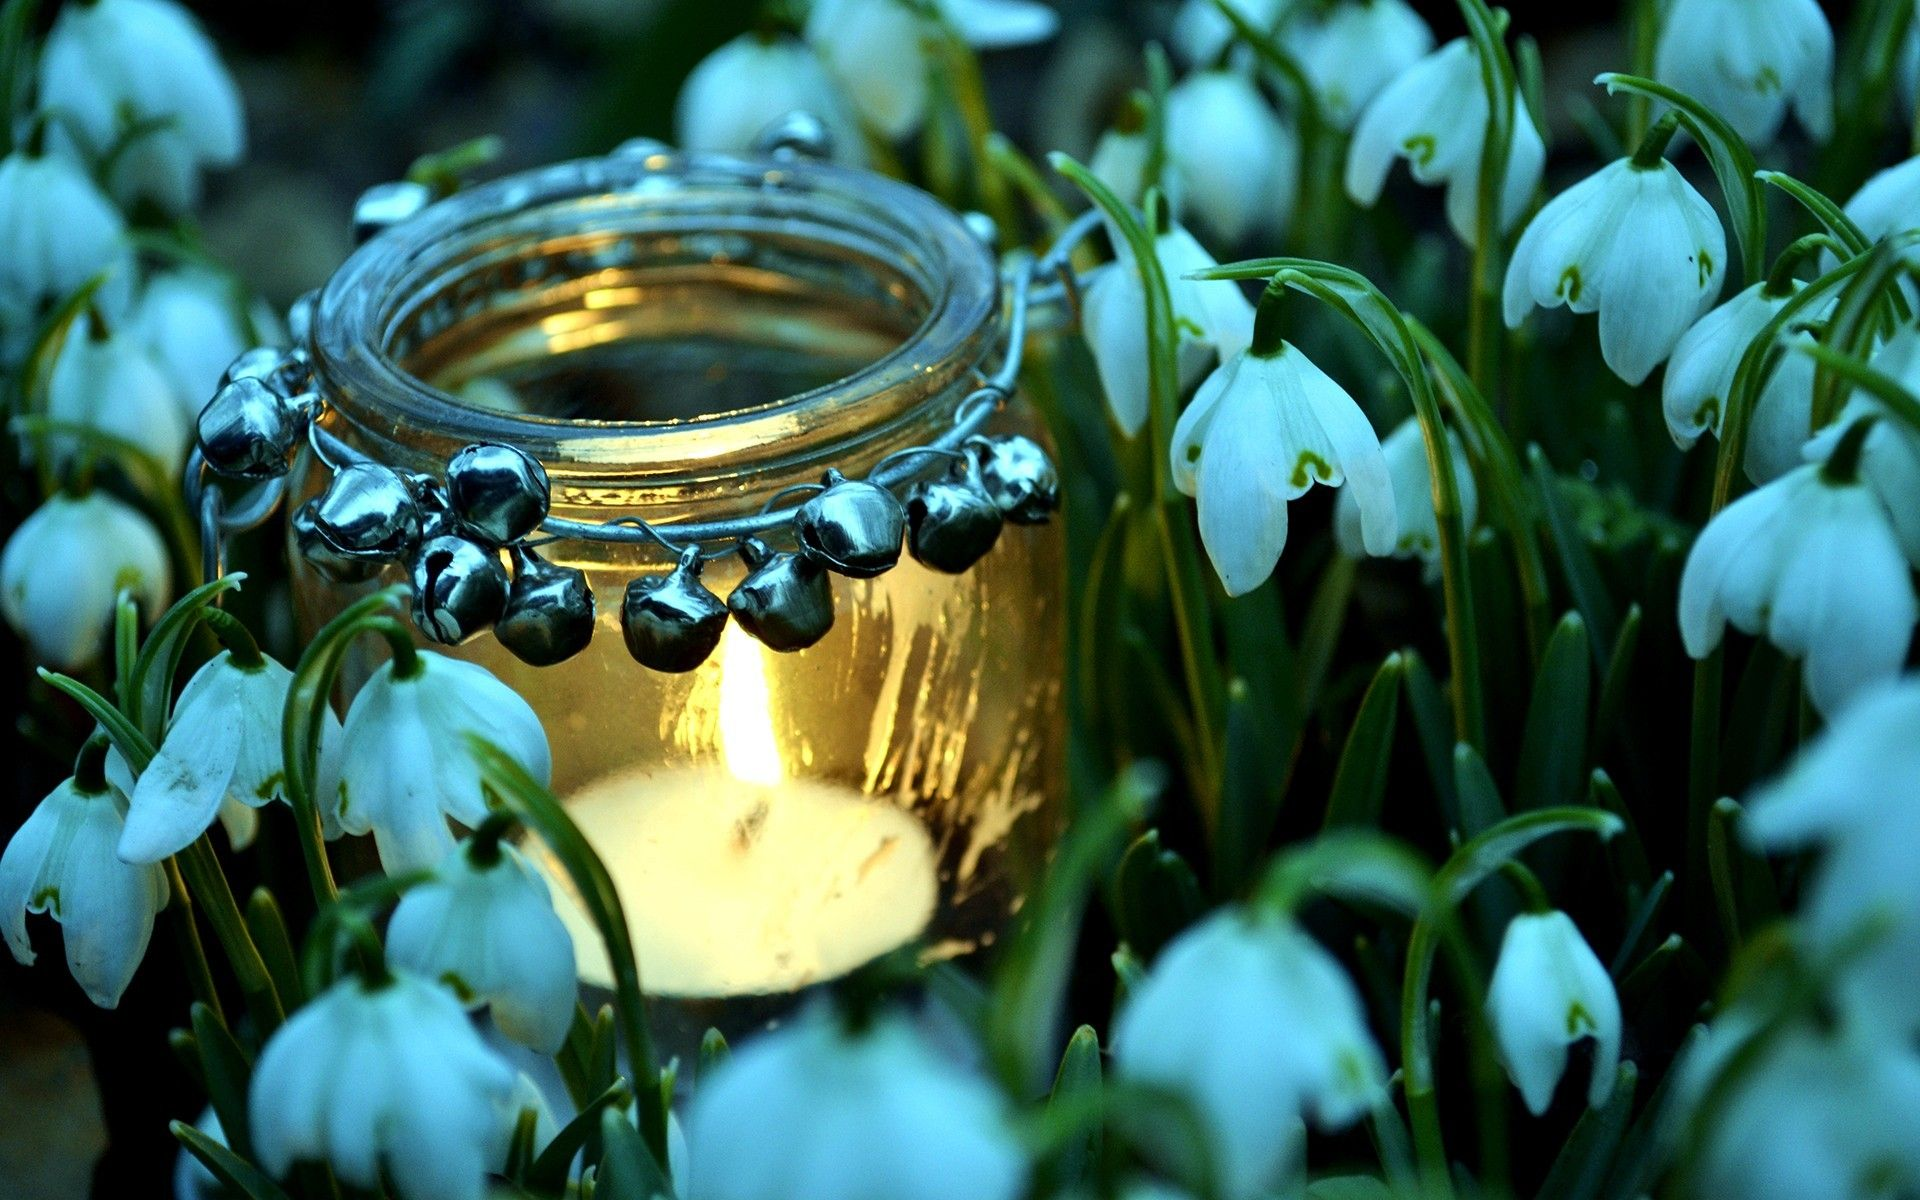 Water Candle Wallpaper Hd Resolution For Desktop Wallpaper Candles Wallpaper Pretty Backgrounds Spring Candles